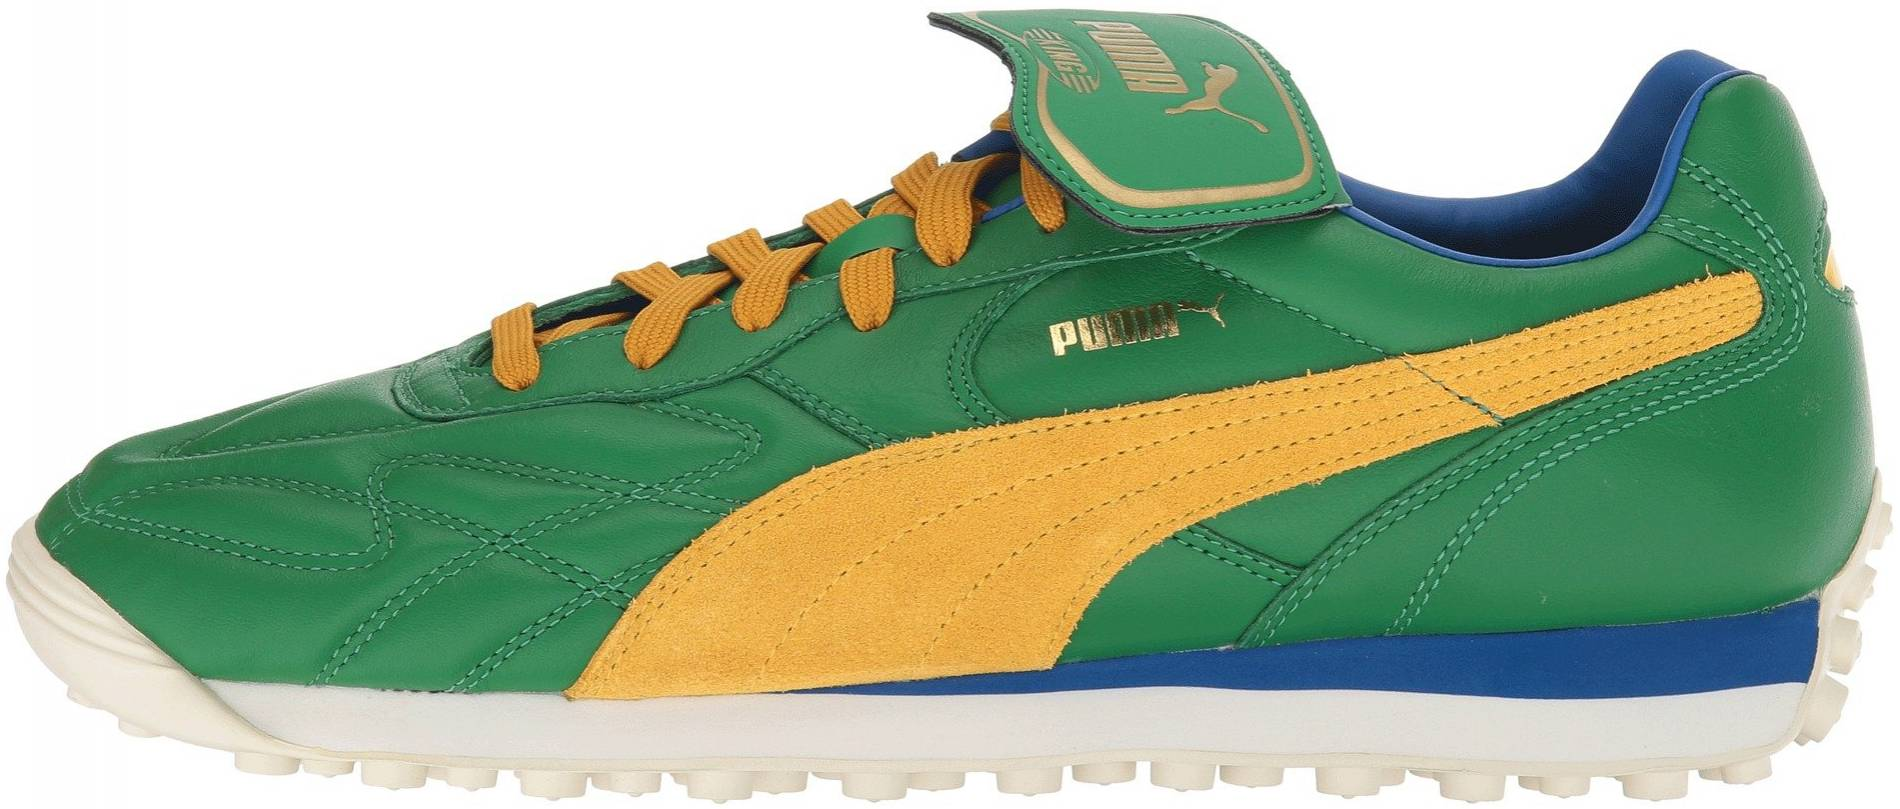 Puma King Avanti Legends Pack